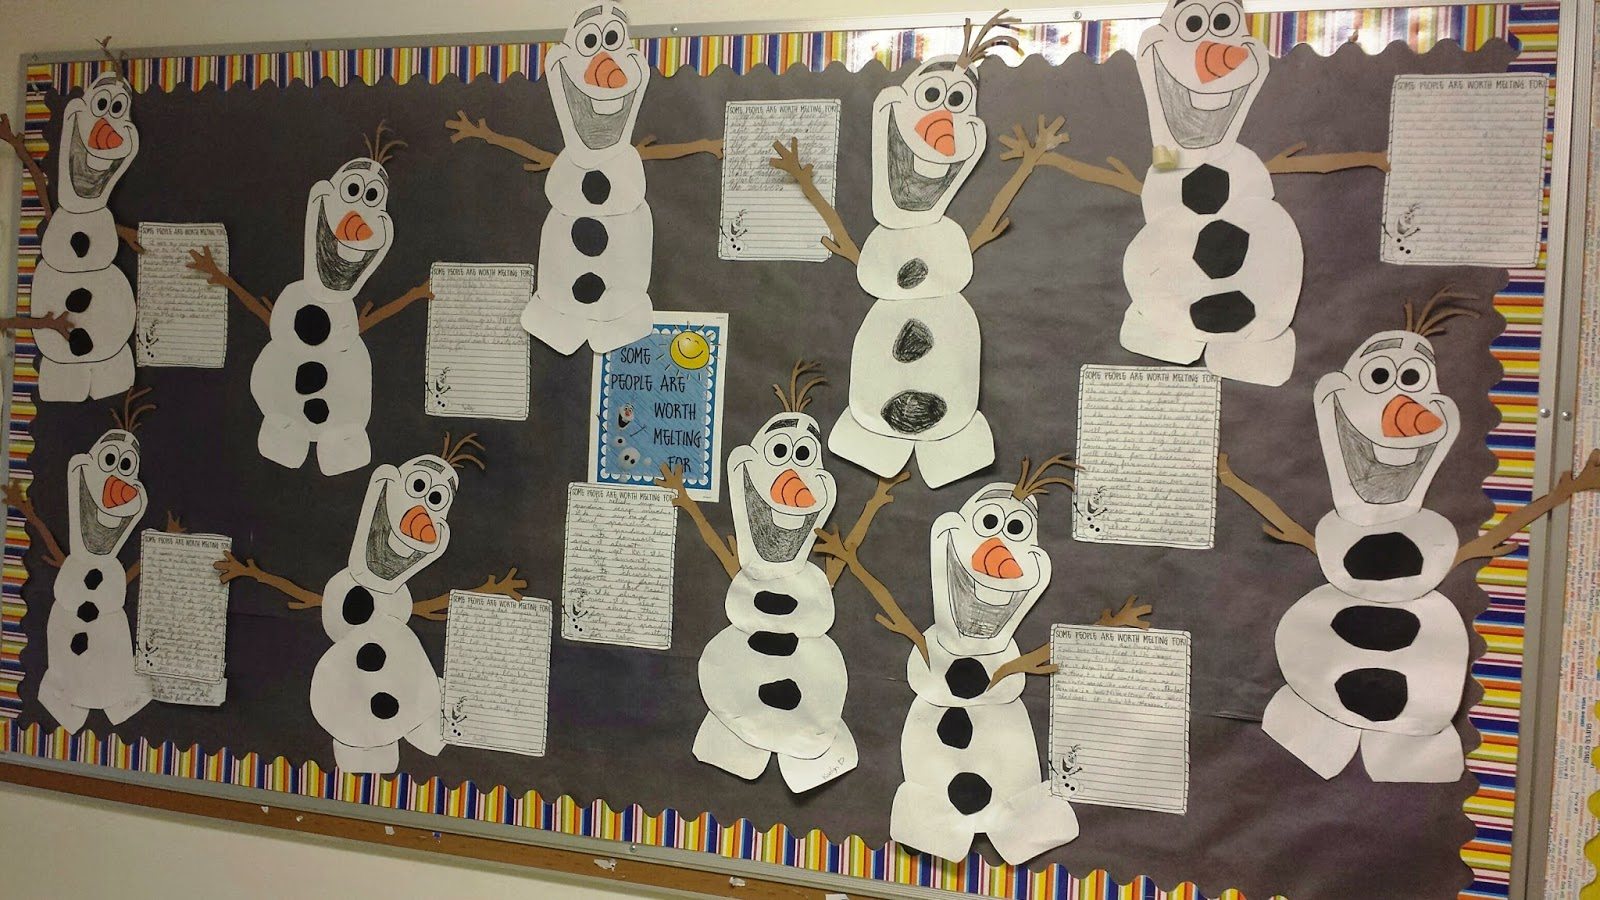 http://www.teacherspayteachers.com/Product/Winter-Writing-FROZEN-Olaf-Themed-Some-People-Are-Worth-Melting-For-1610473